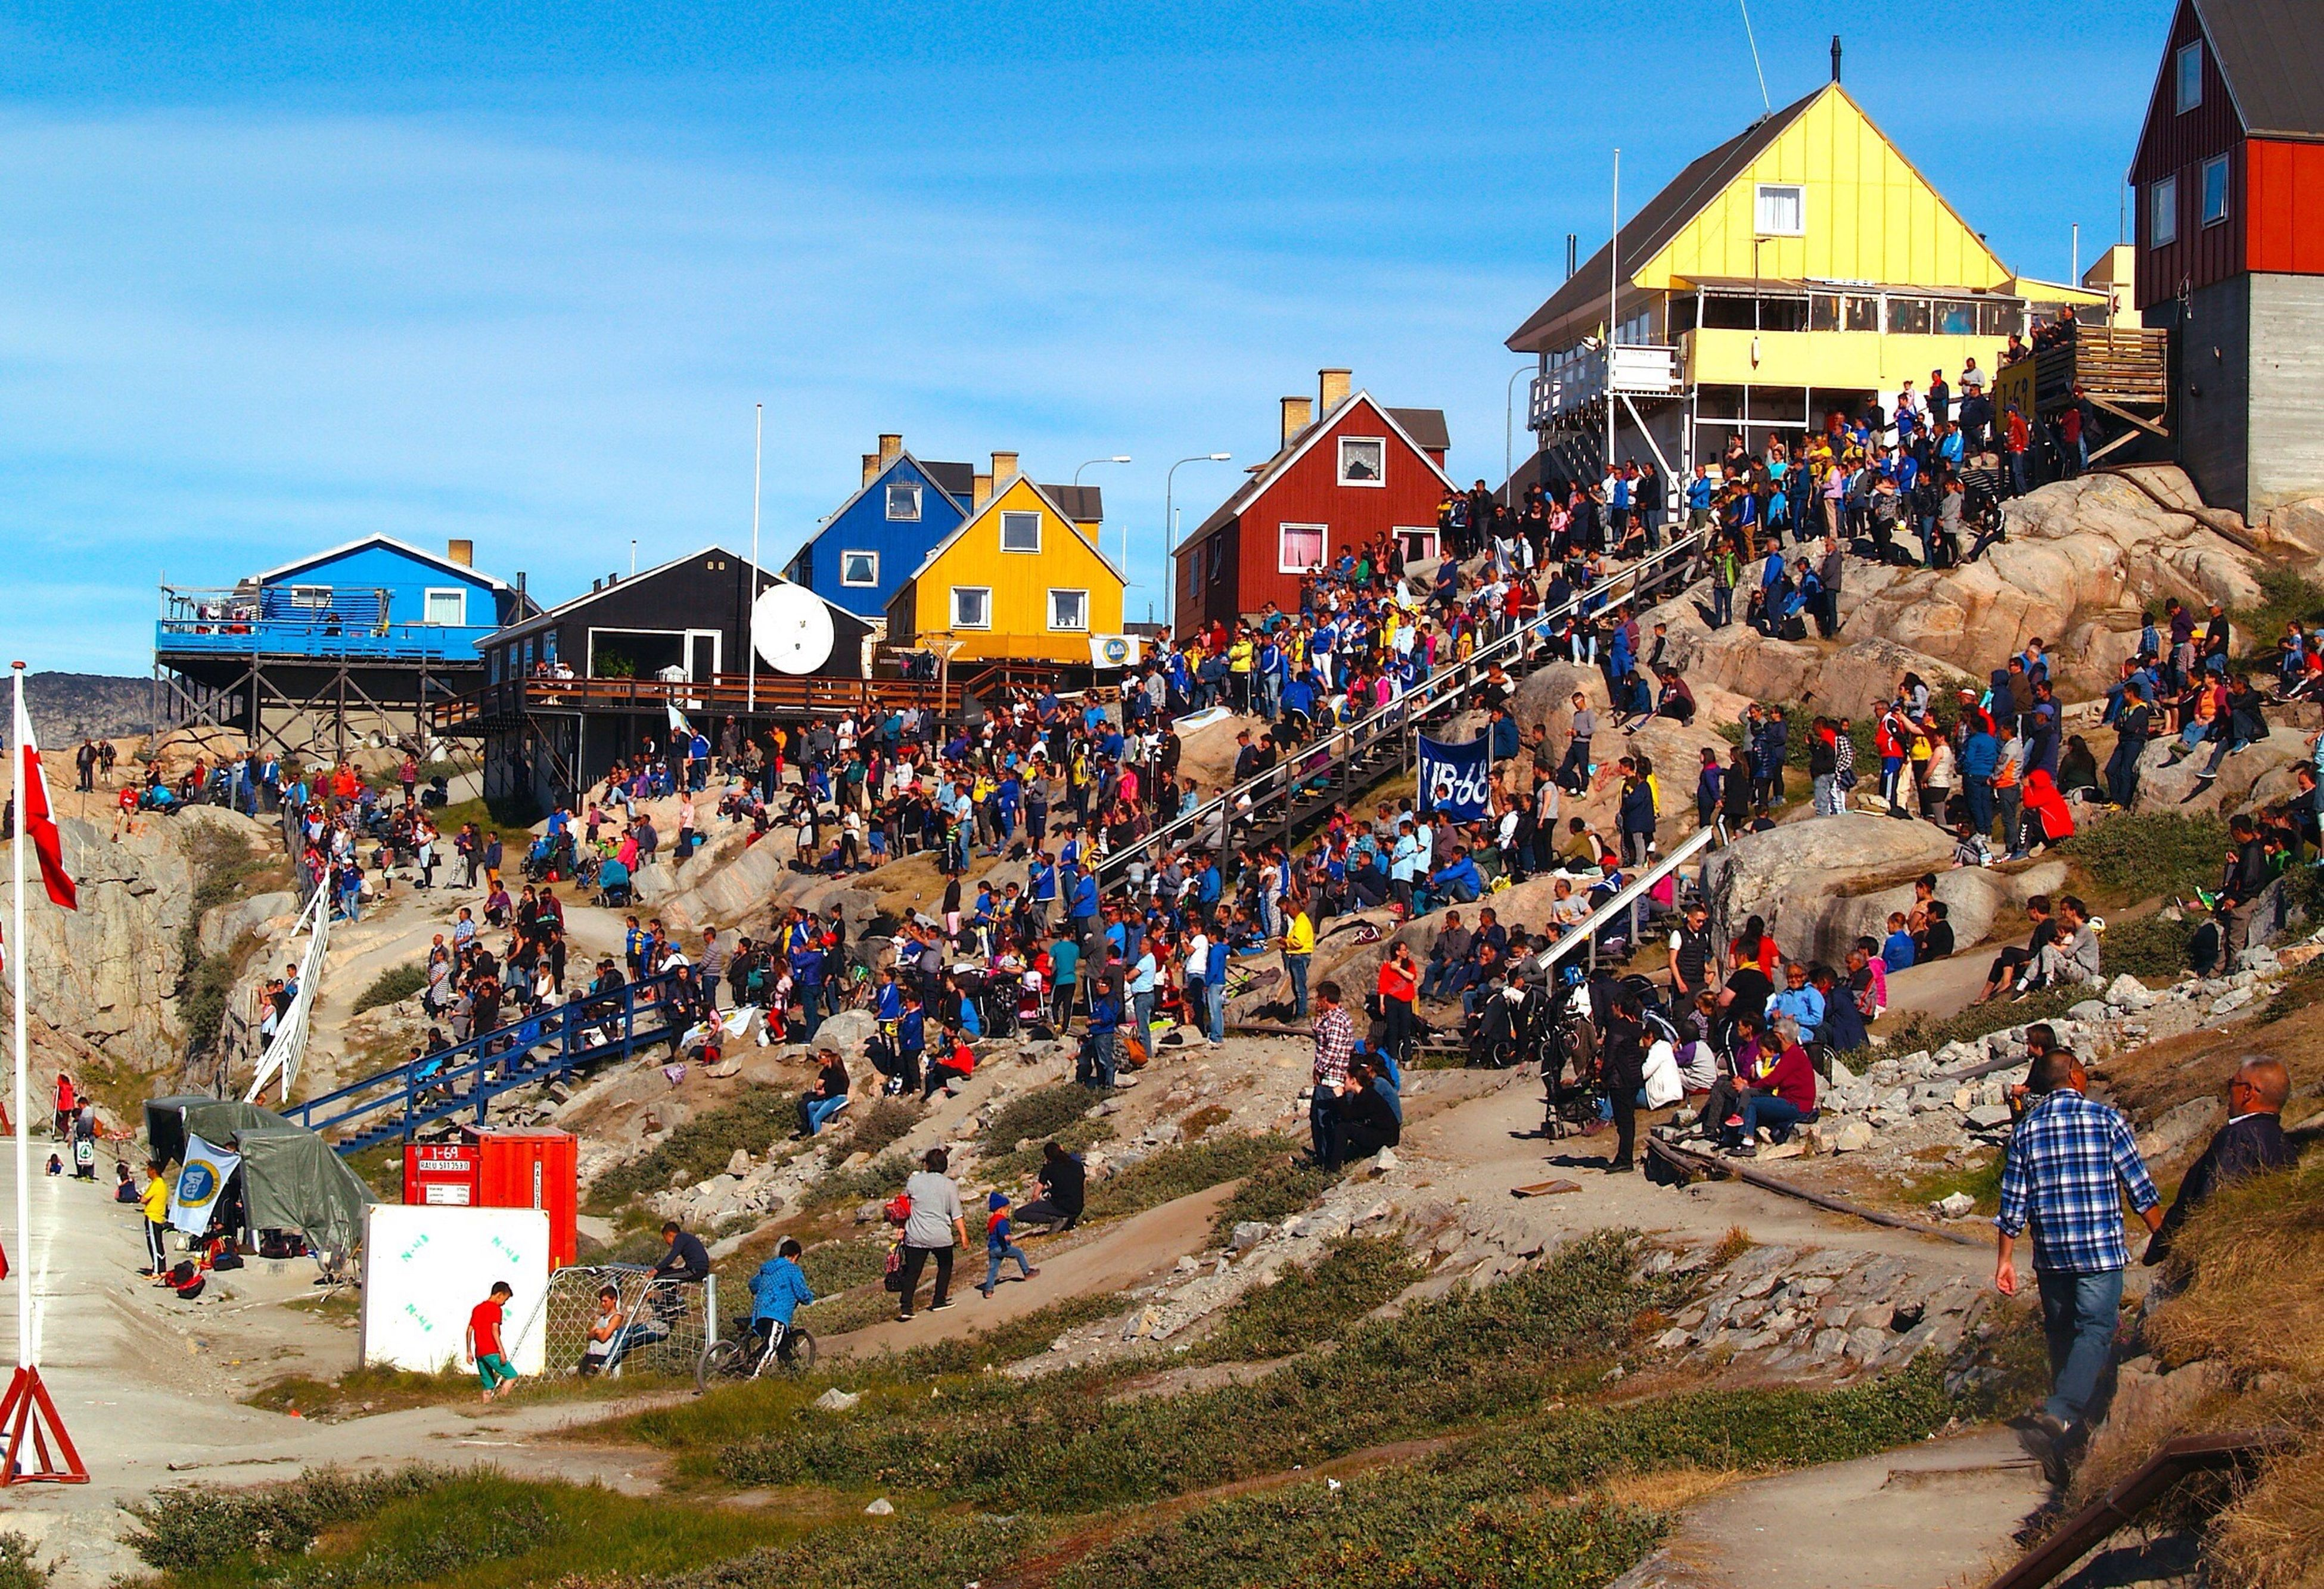 large group of people, building exterior, lifestyles, person, leisure activity, built structure, togetherness, vacations, architecture, men, enjoyment, crowd, tourist, tourism, casual clothing, outdoors, town, sky, fun, day, summer, facade, city life